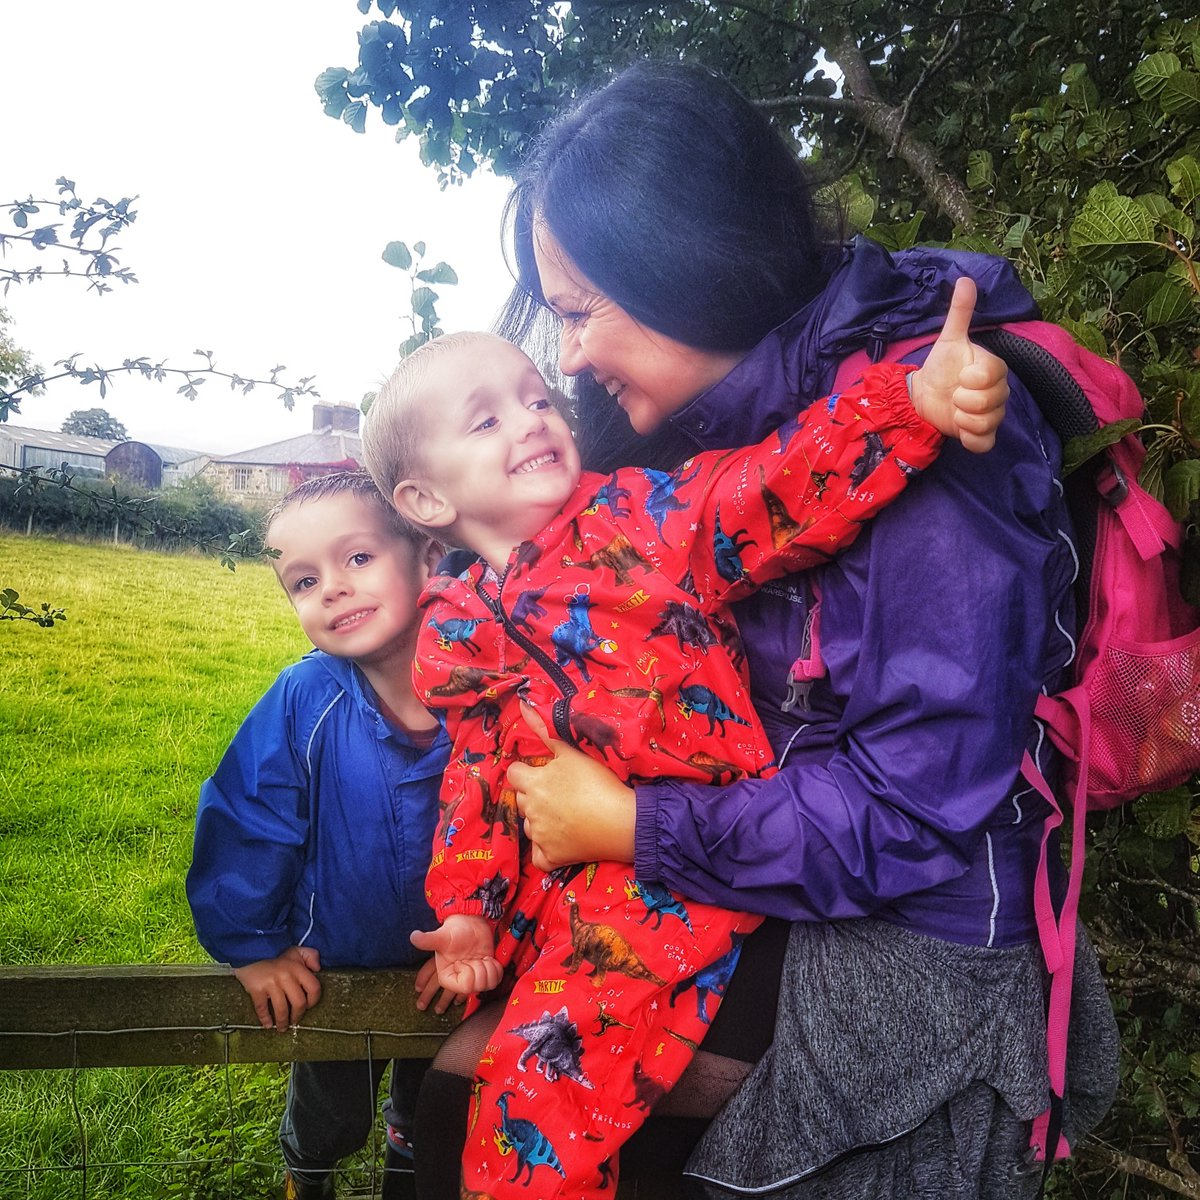 The thoroughly modern mummy: why there is no such thing as work/life balance http://dld.bz/hQ8HM #worklifebalance #worklifeblend #modernmummypic.twitter.com/M6yKtdnPDe